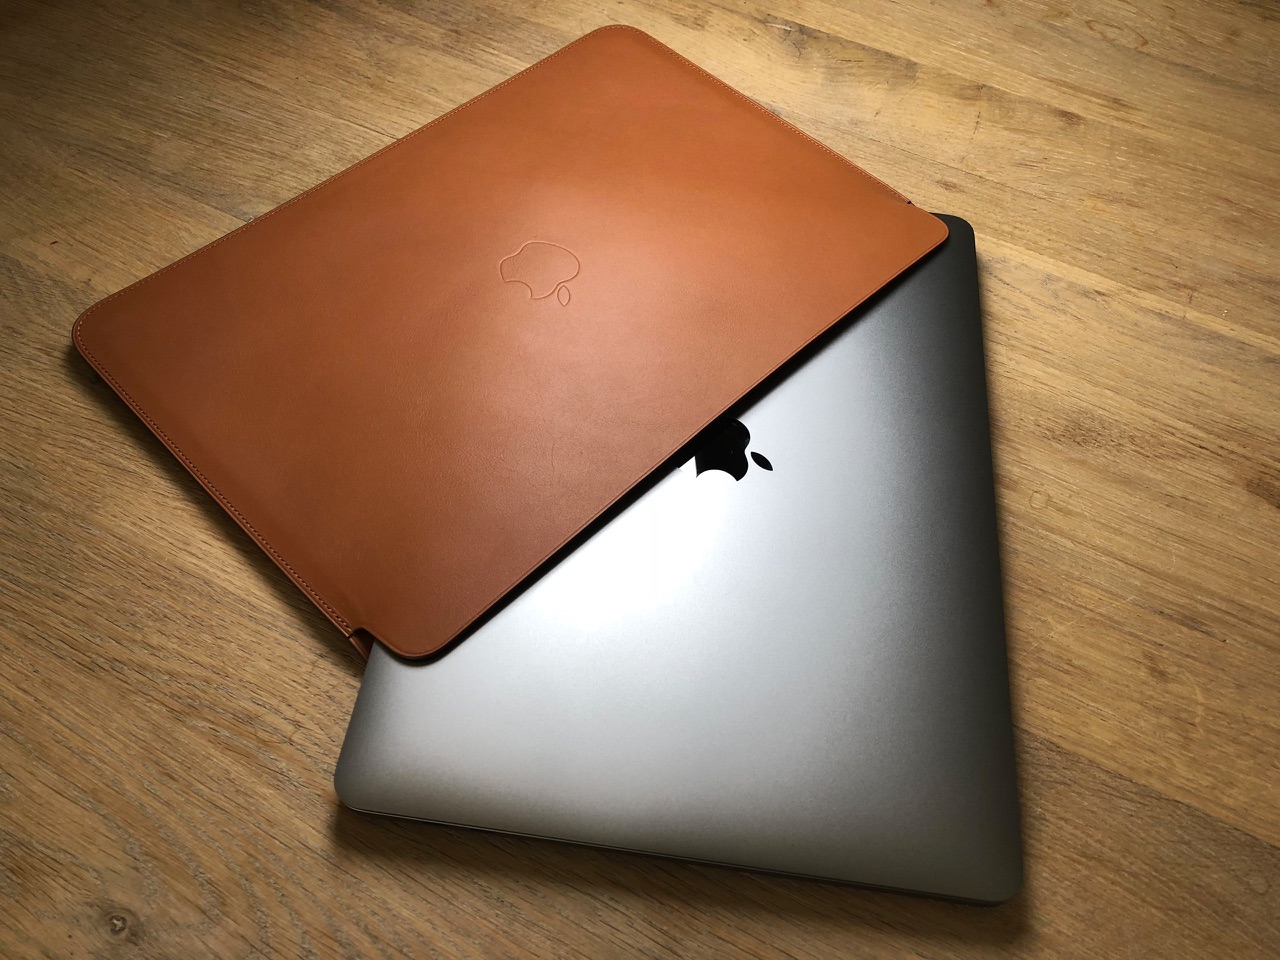 MacBook Pro schuin in Leren Sleeve.